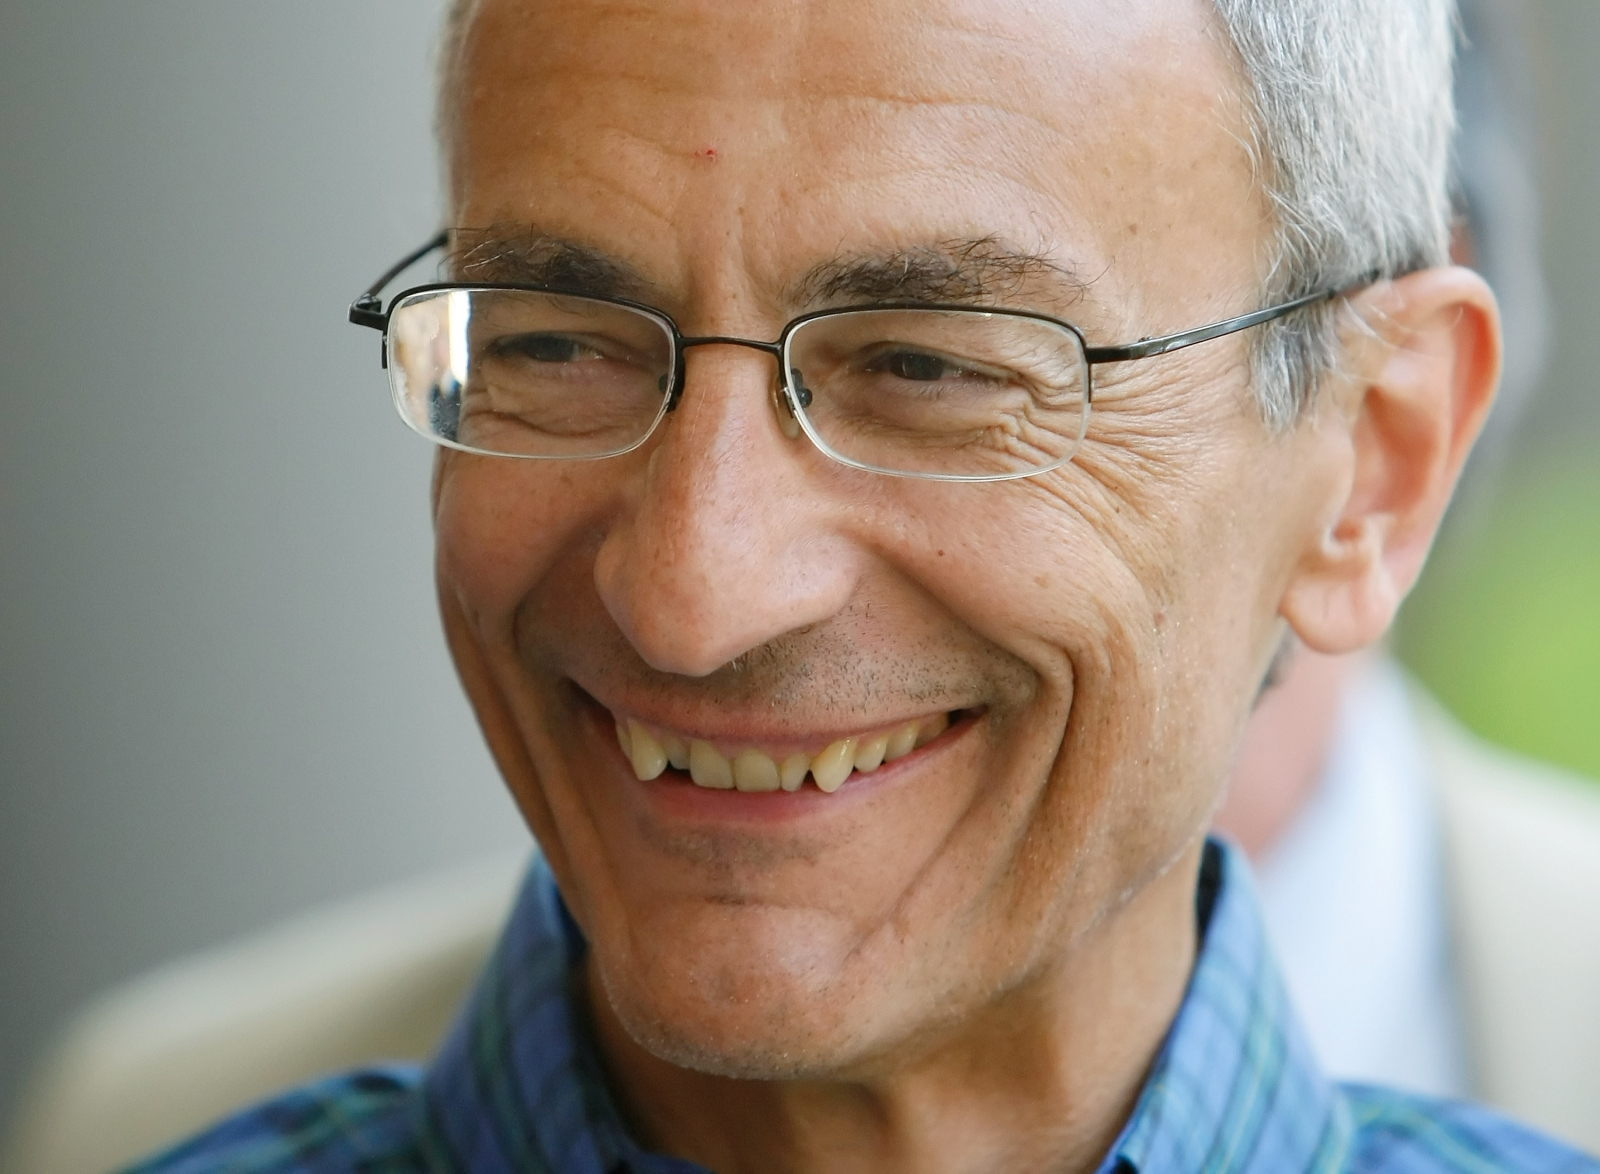 John Podesta trolled Julian Assange by making risotto even as his emails were being leaked